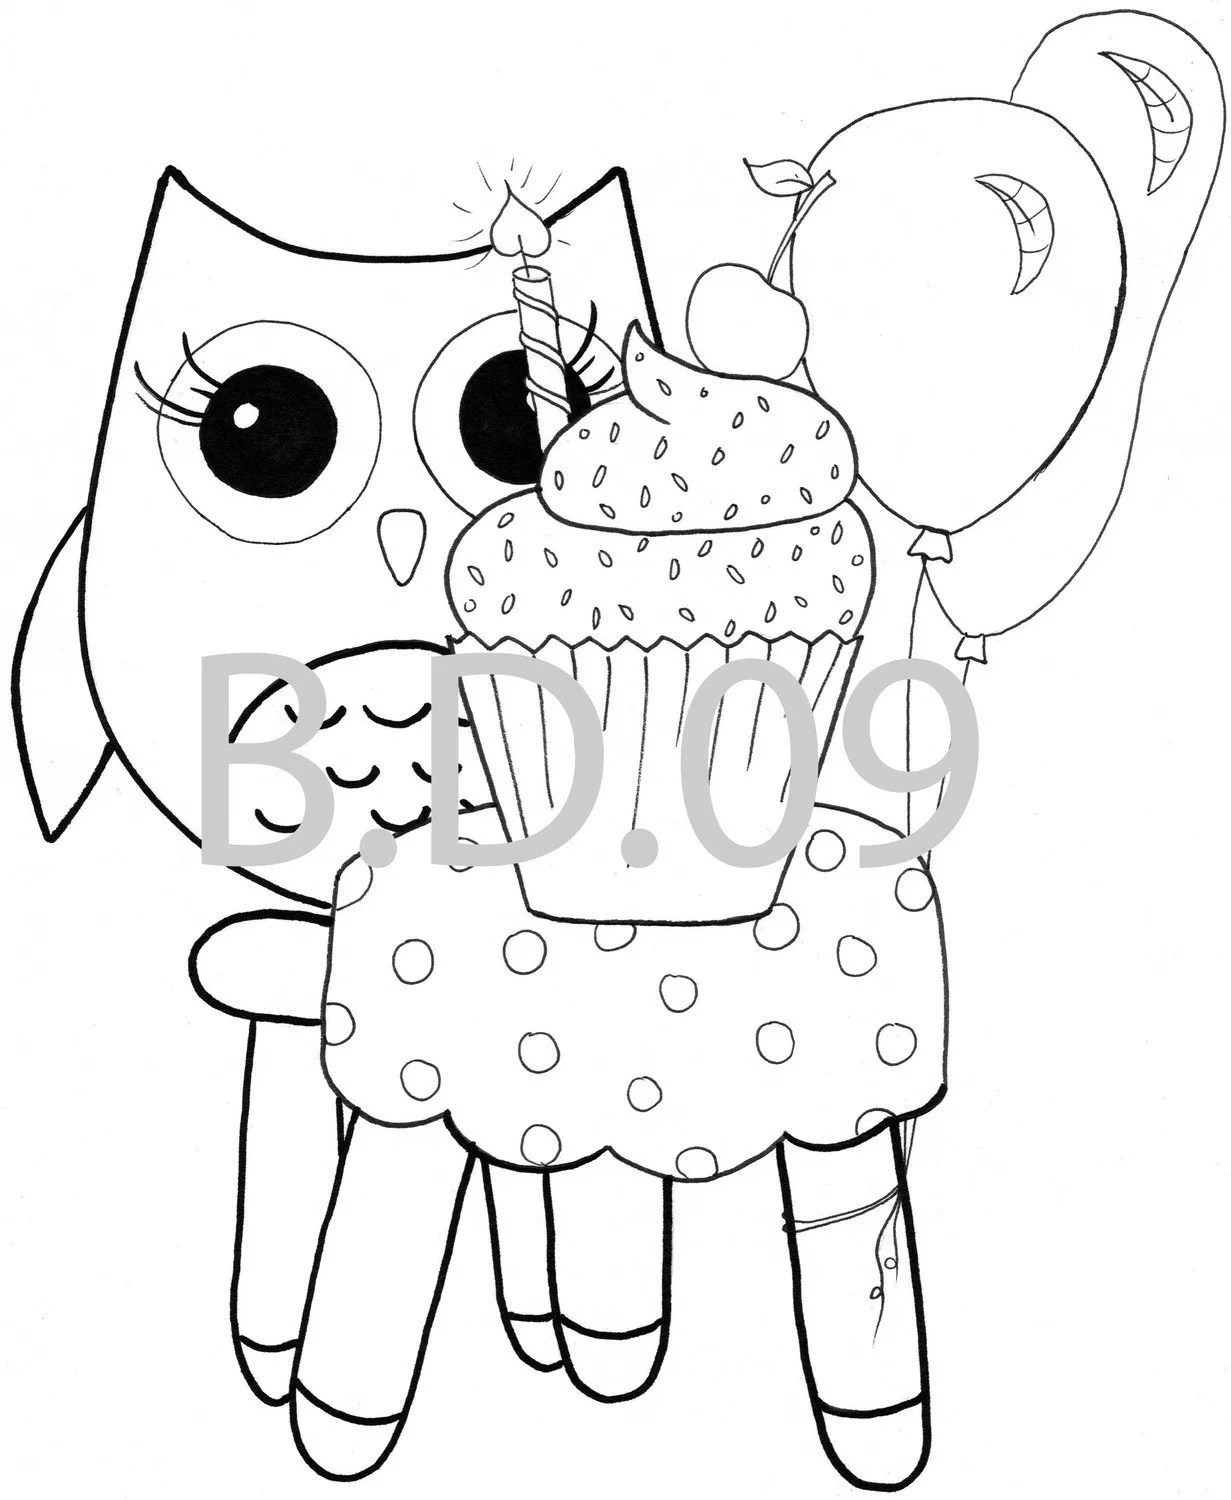 Coloring pages Owl Themed 10 pc by BDDesignCrafts on Etsy